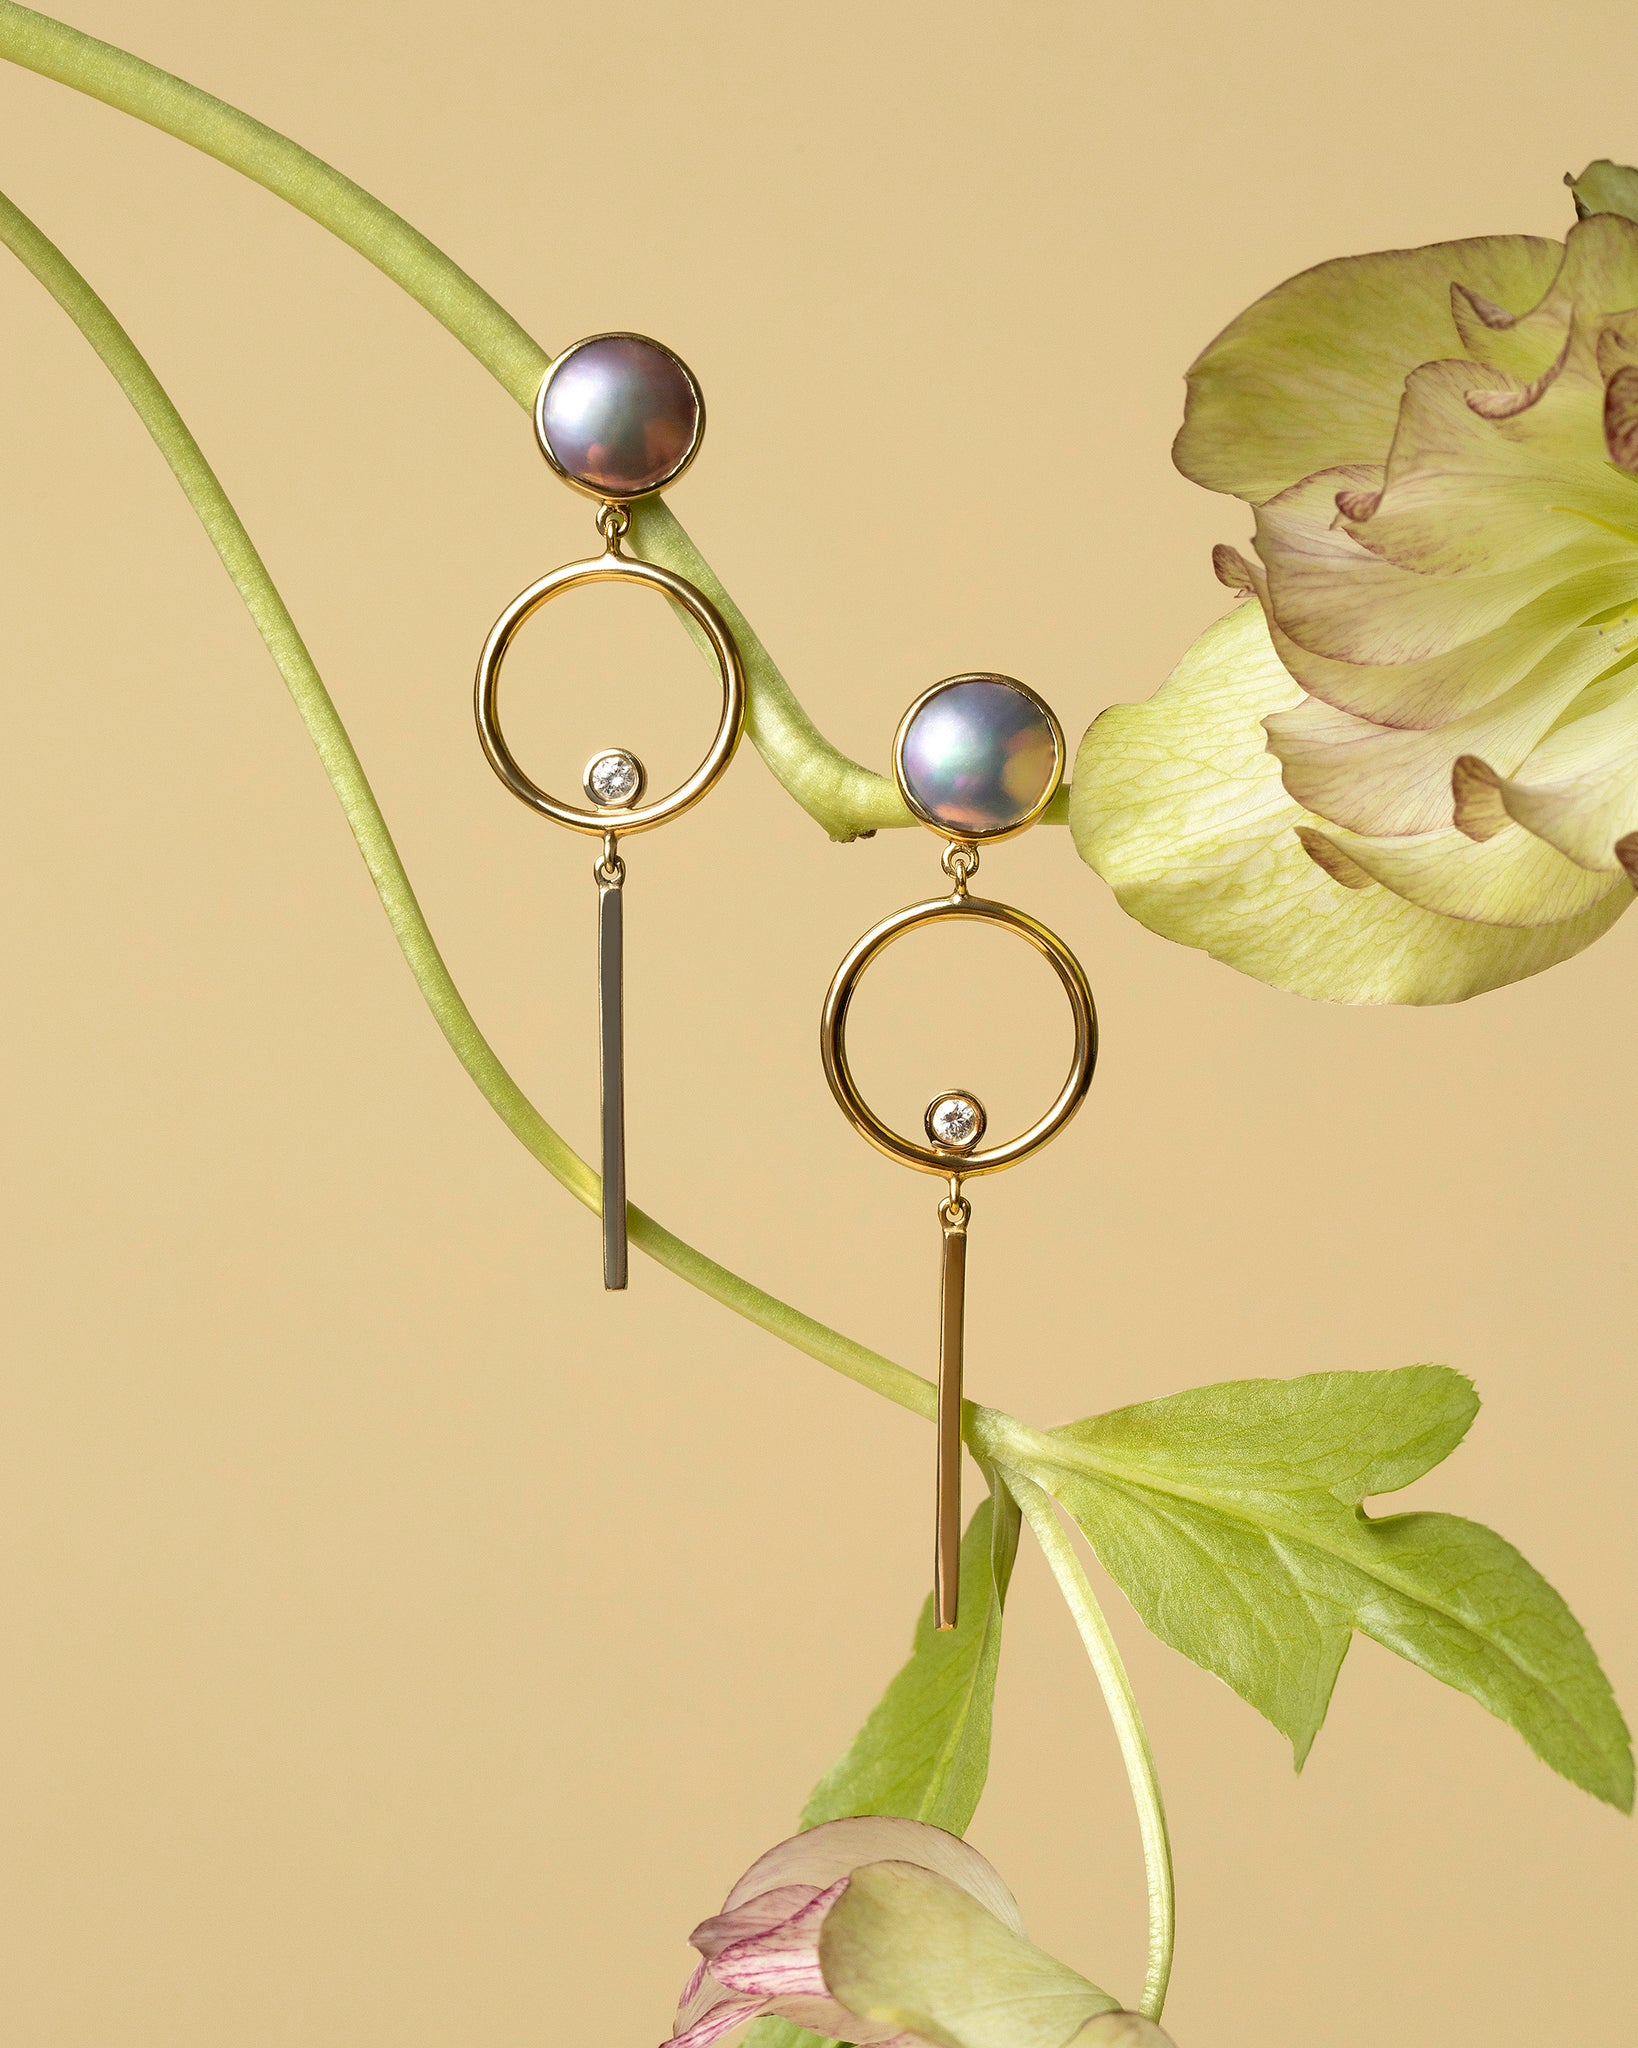 Figure 8. Drop Earrings Styled